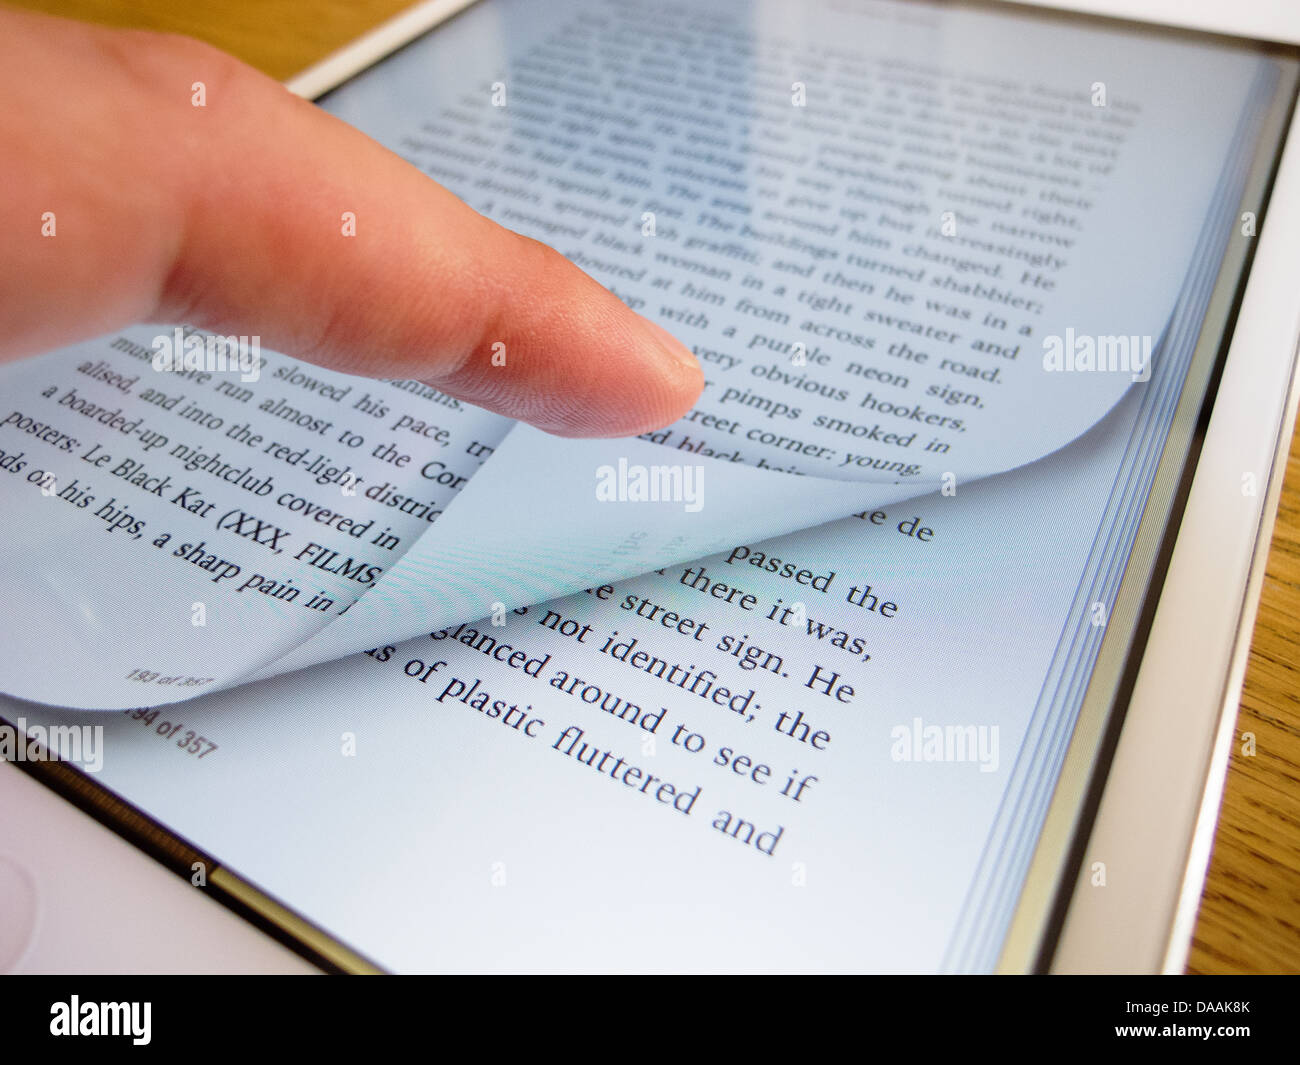 Detail of iPad mini screen showing iBooks ebook reader with page turning - Stock Image